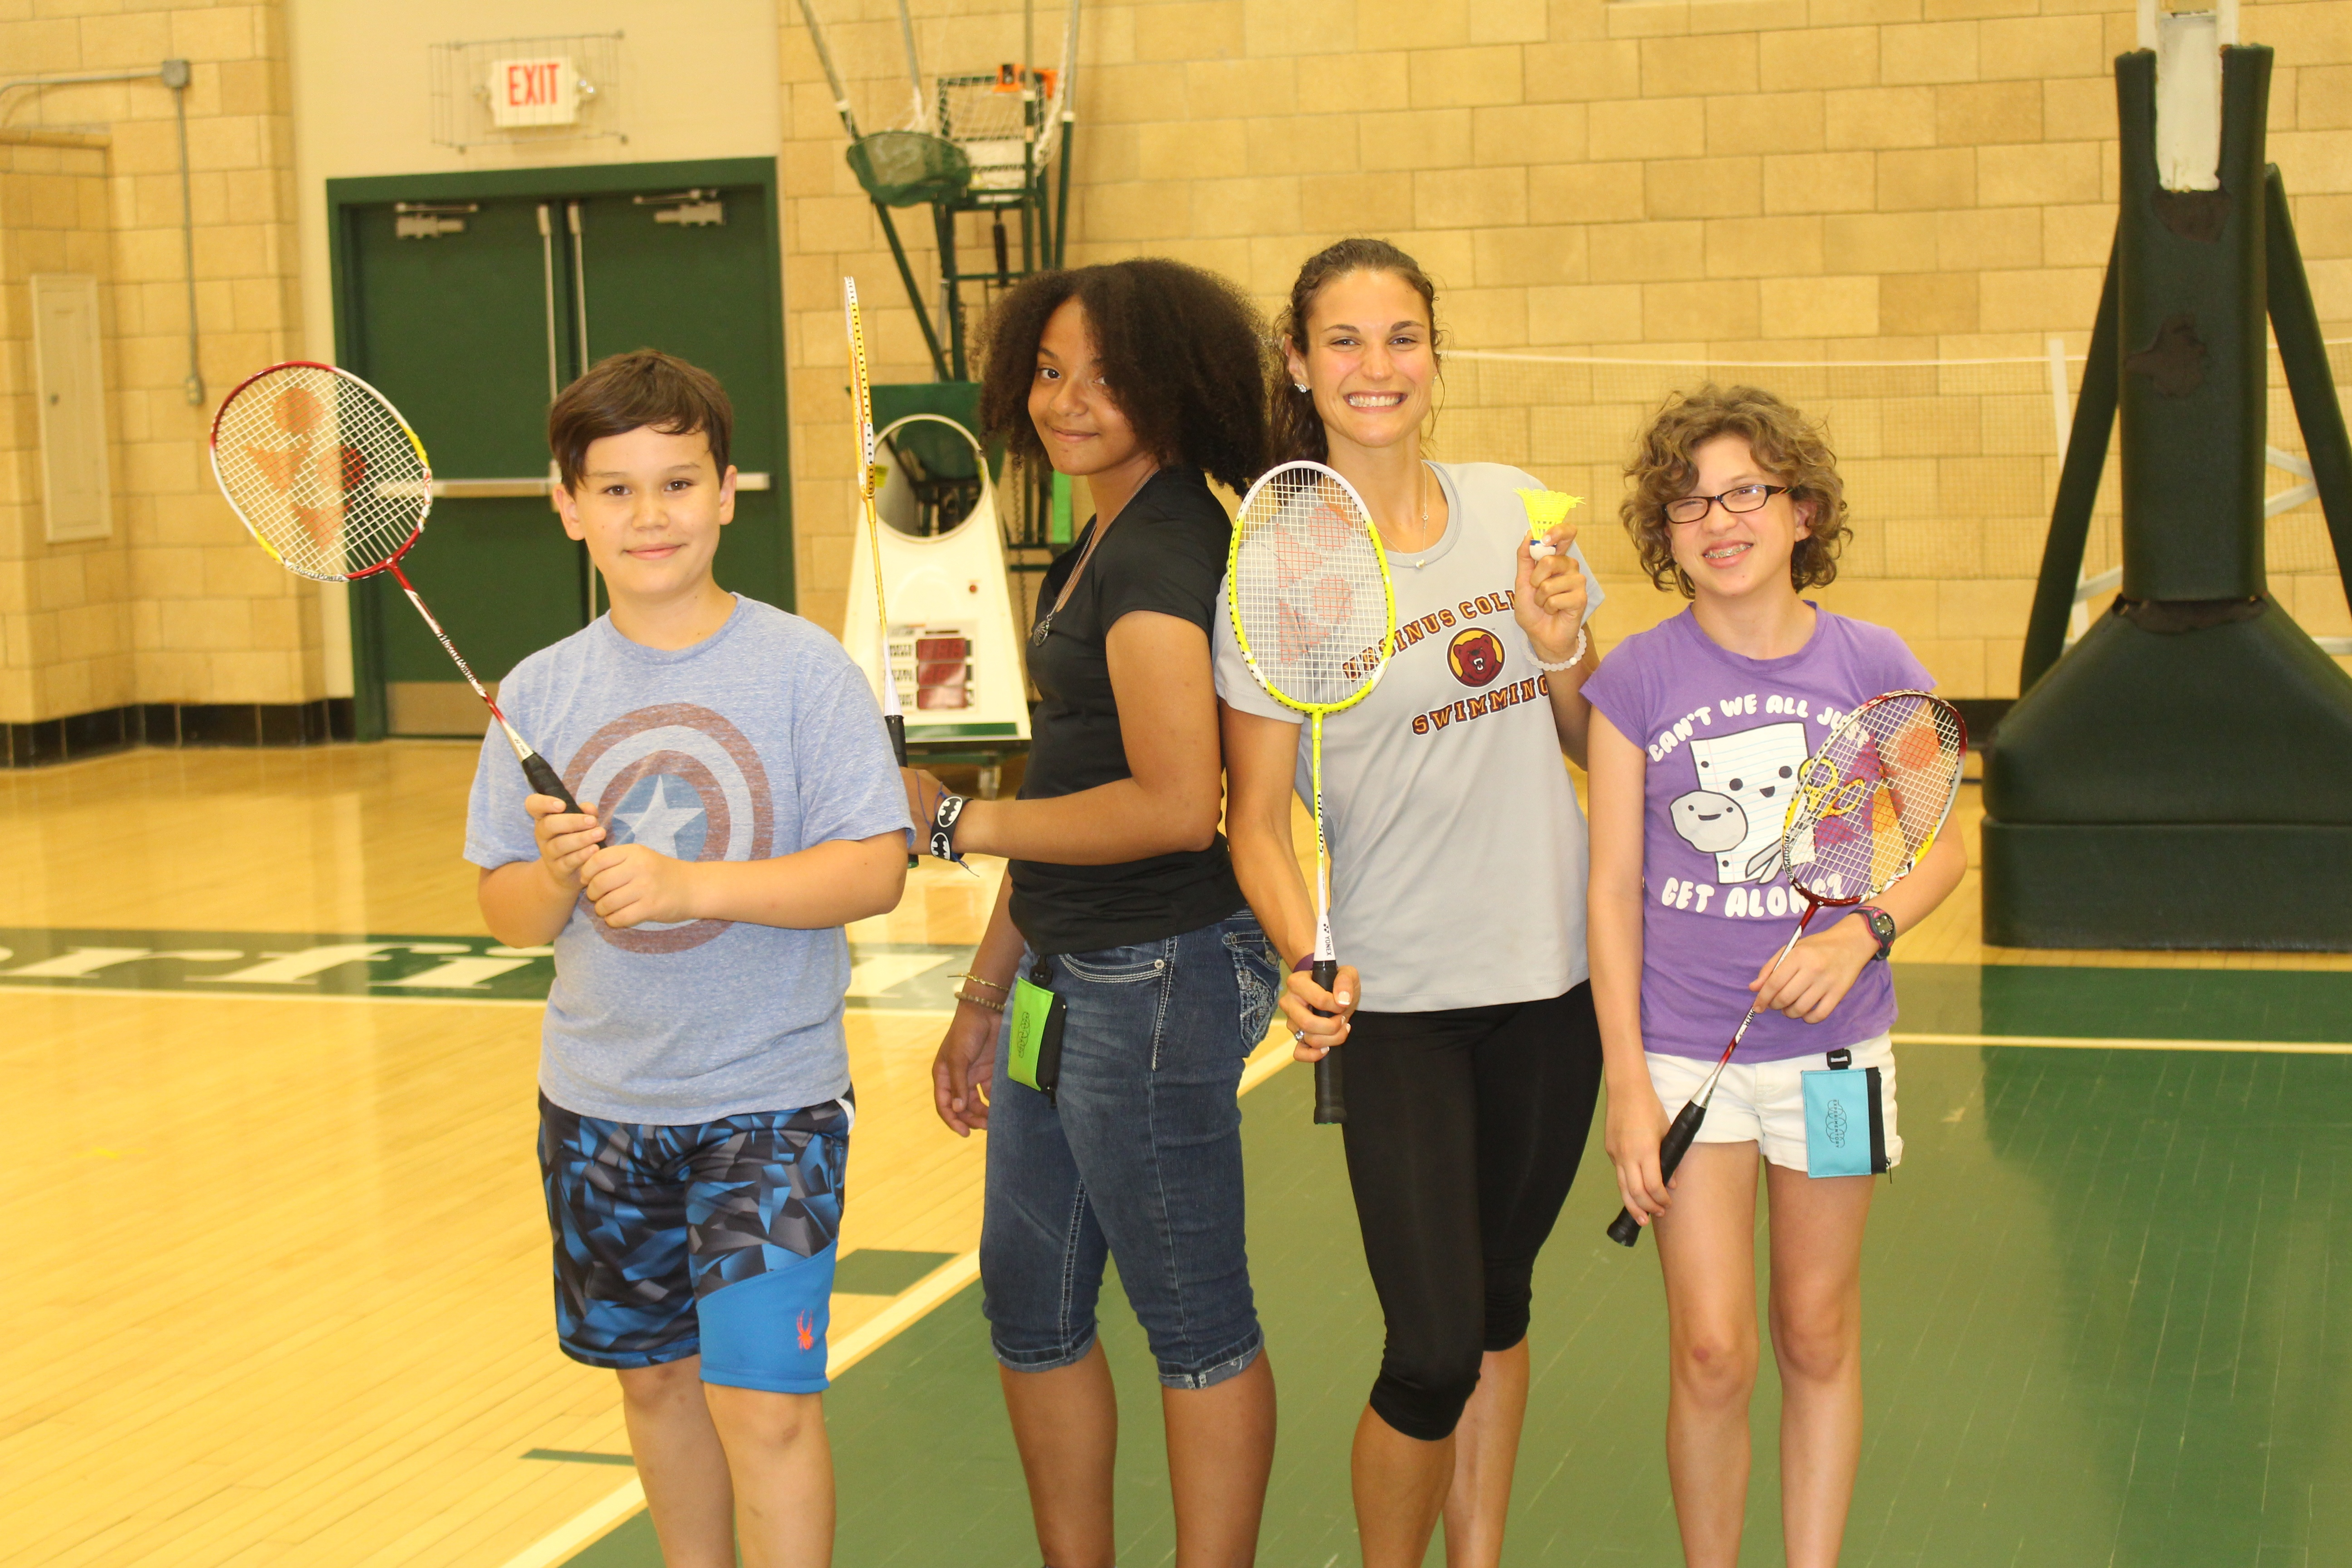 These four spent their free time playing badminton in the Deerfield Academy gym.